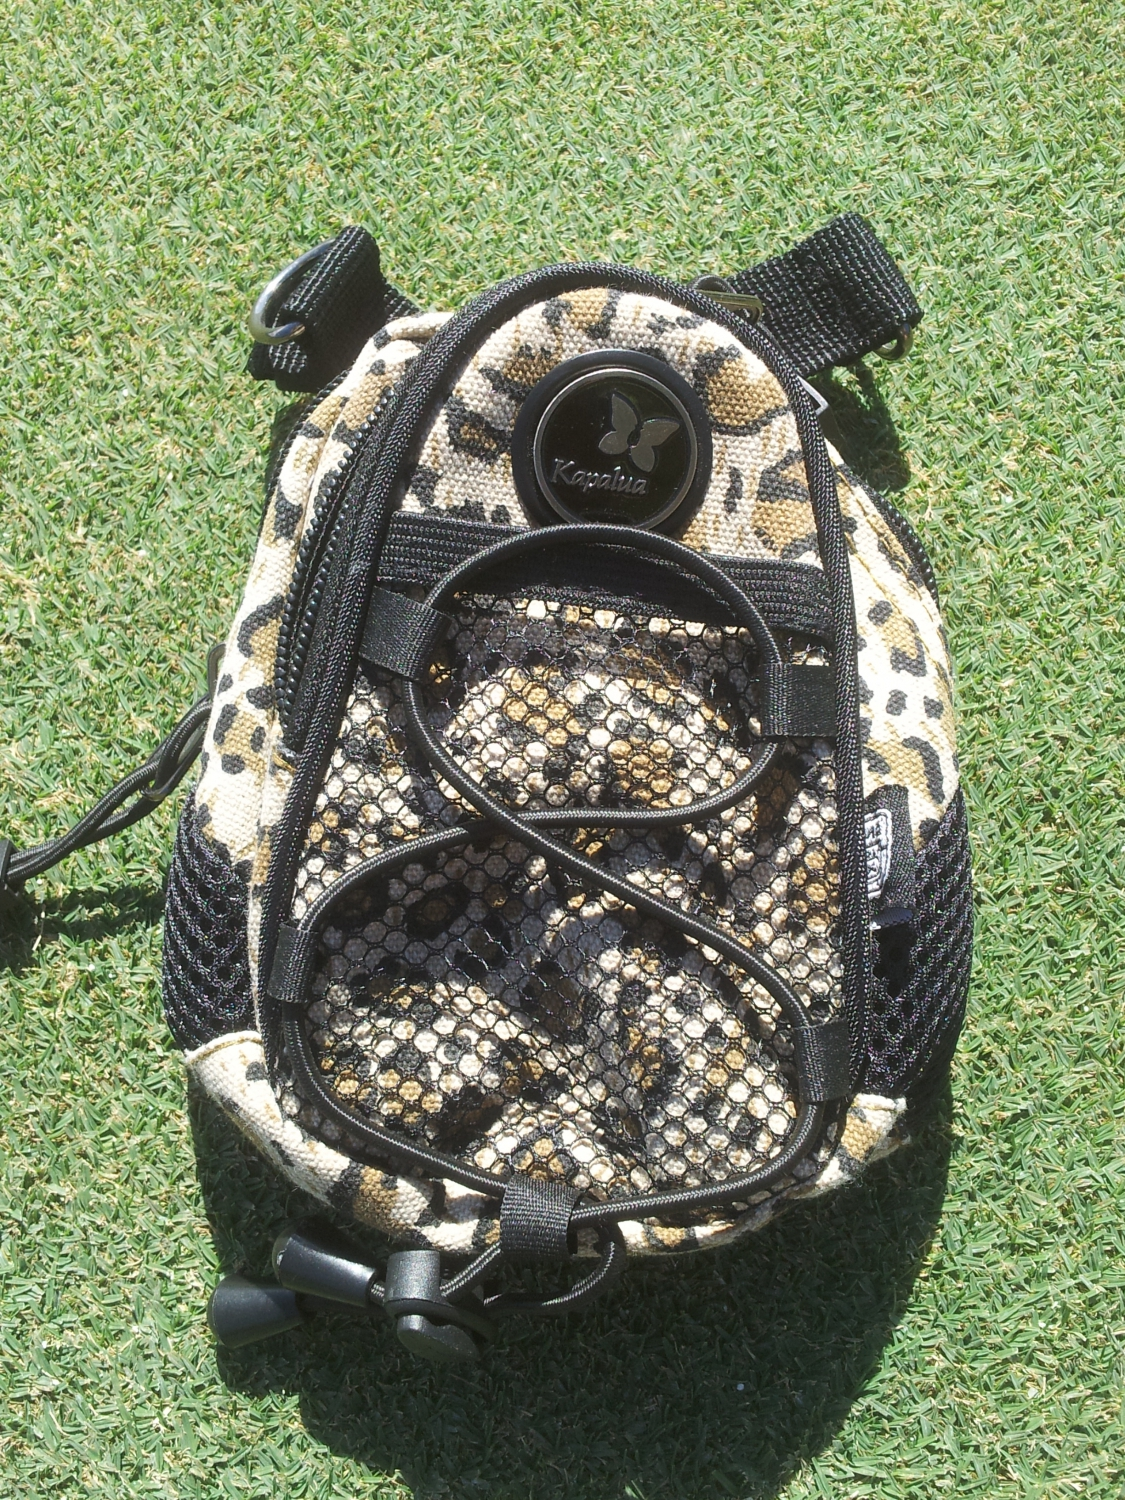 Leopard valuables pouch with strap